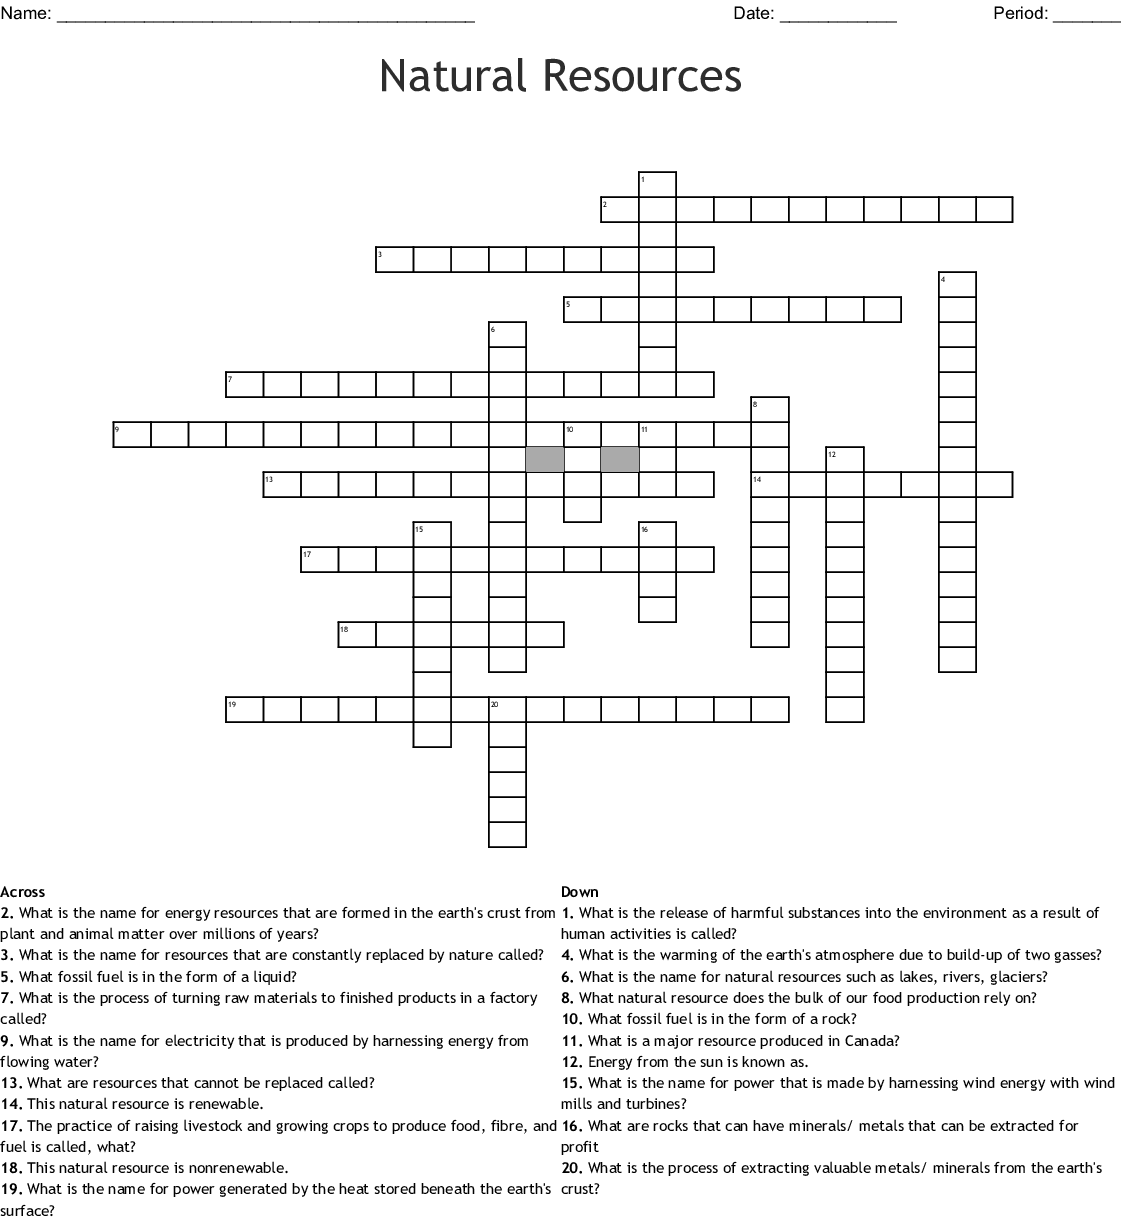 Natural Resources Crossword